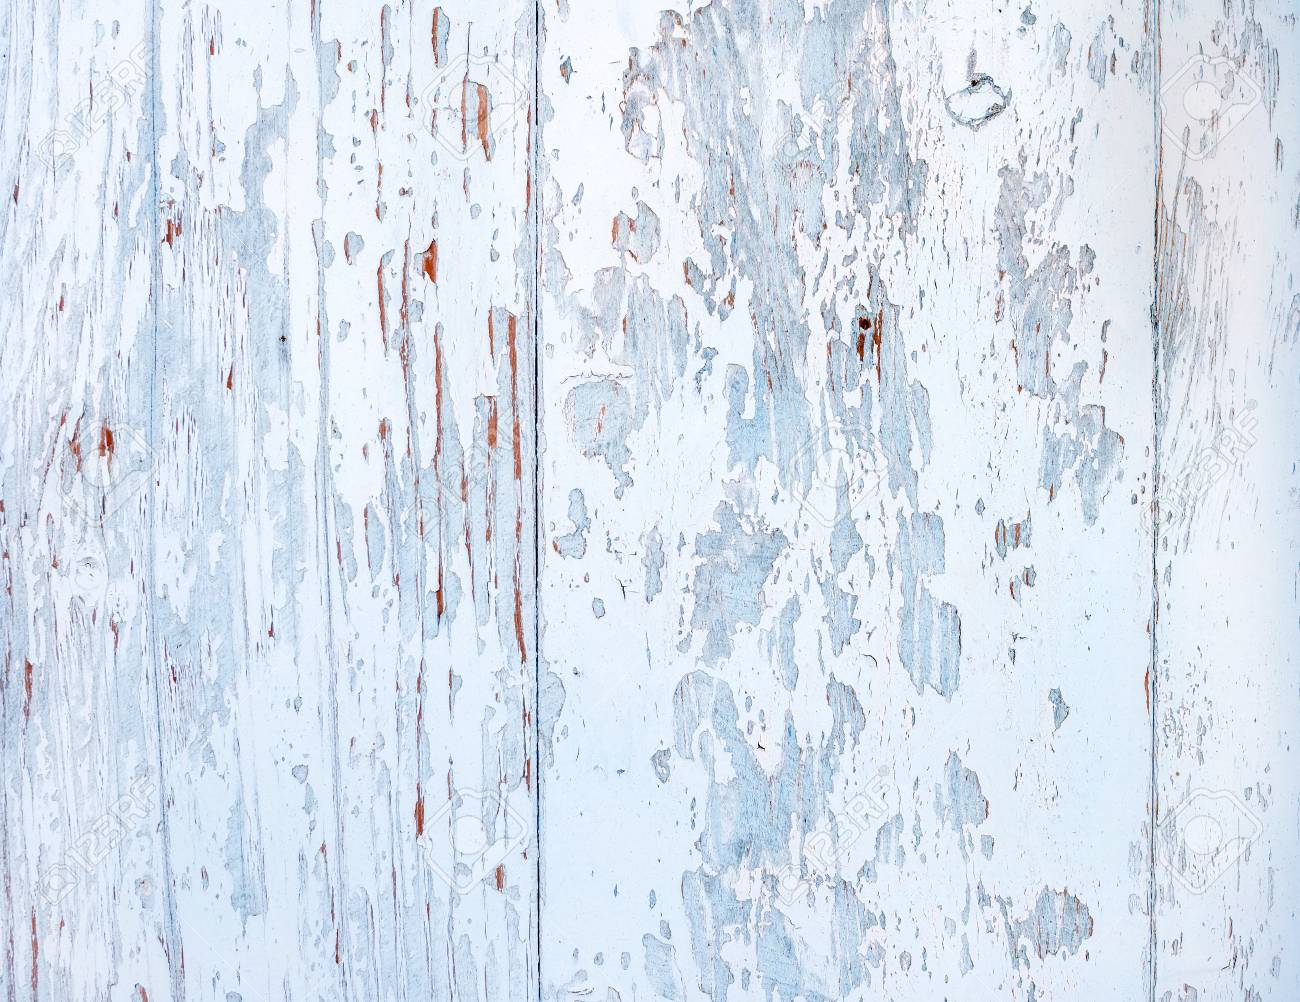 Vintage Rustic Style Natural Surface Background And Wallpaper Stock